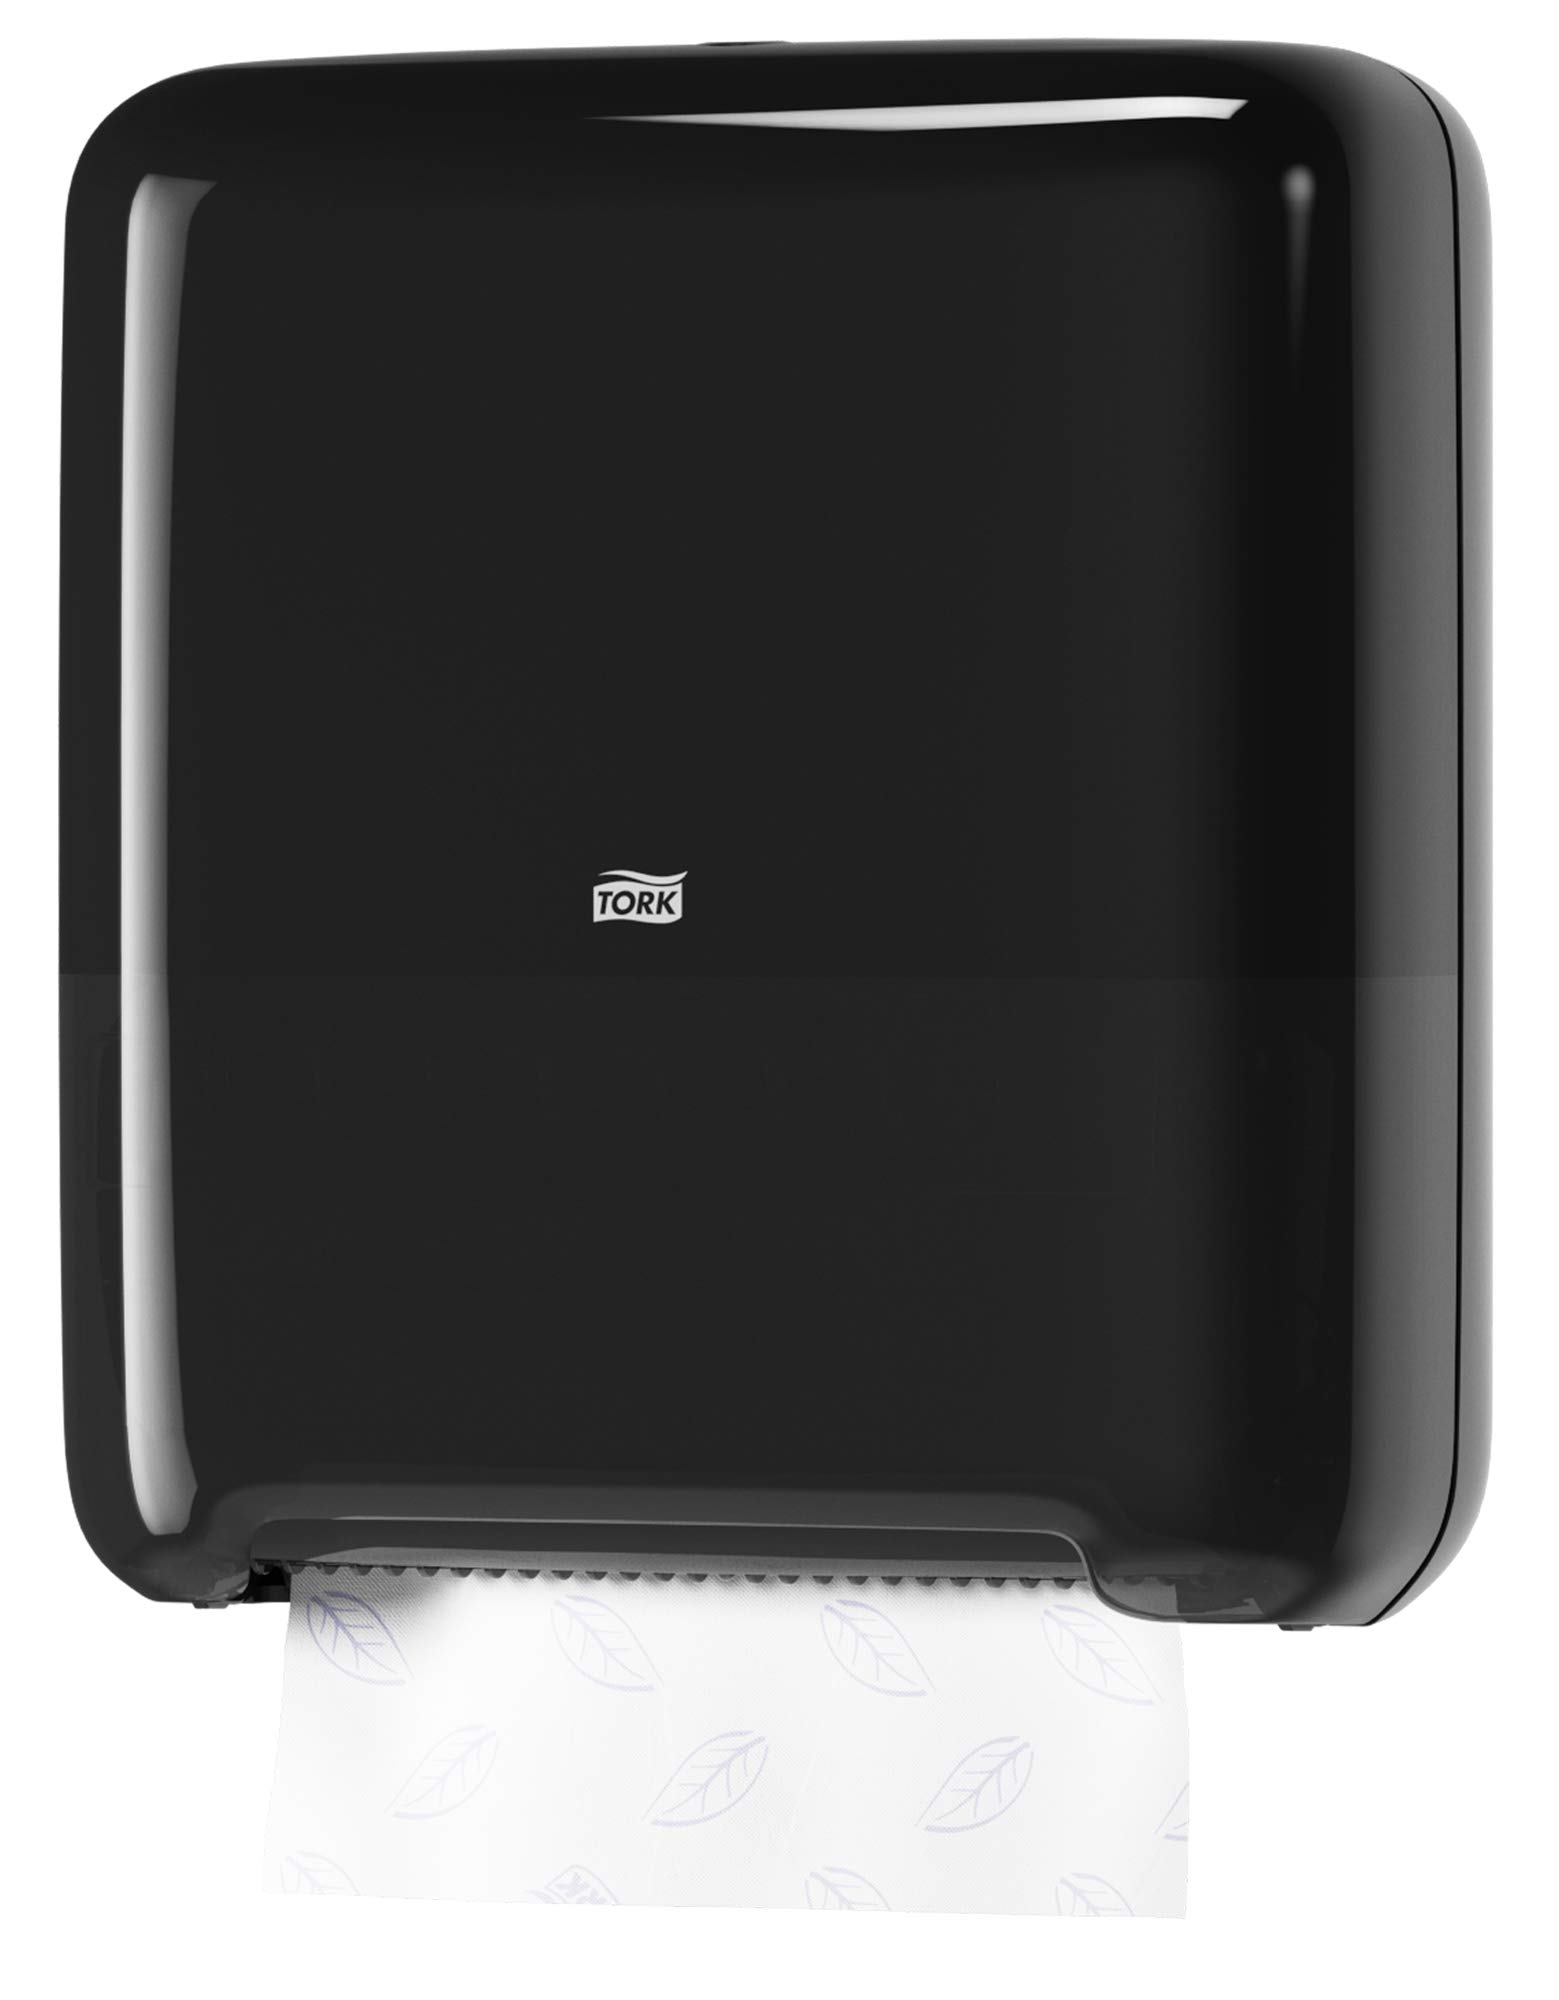 Tork 5510282 Elevation Matic Paper Hand Towel Roll Dispenser, 14.65'' Height x 13.2'' Width x 8.1'' Depth, Black (Case of 1 Dispenser) by Tork (Image #6)